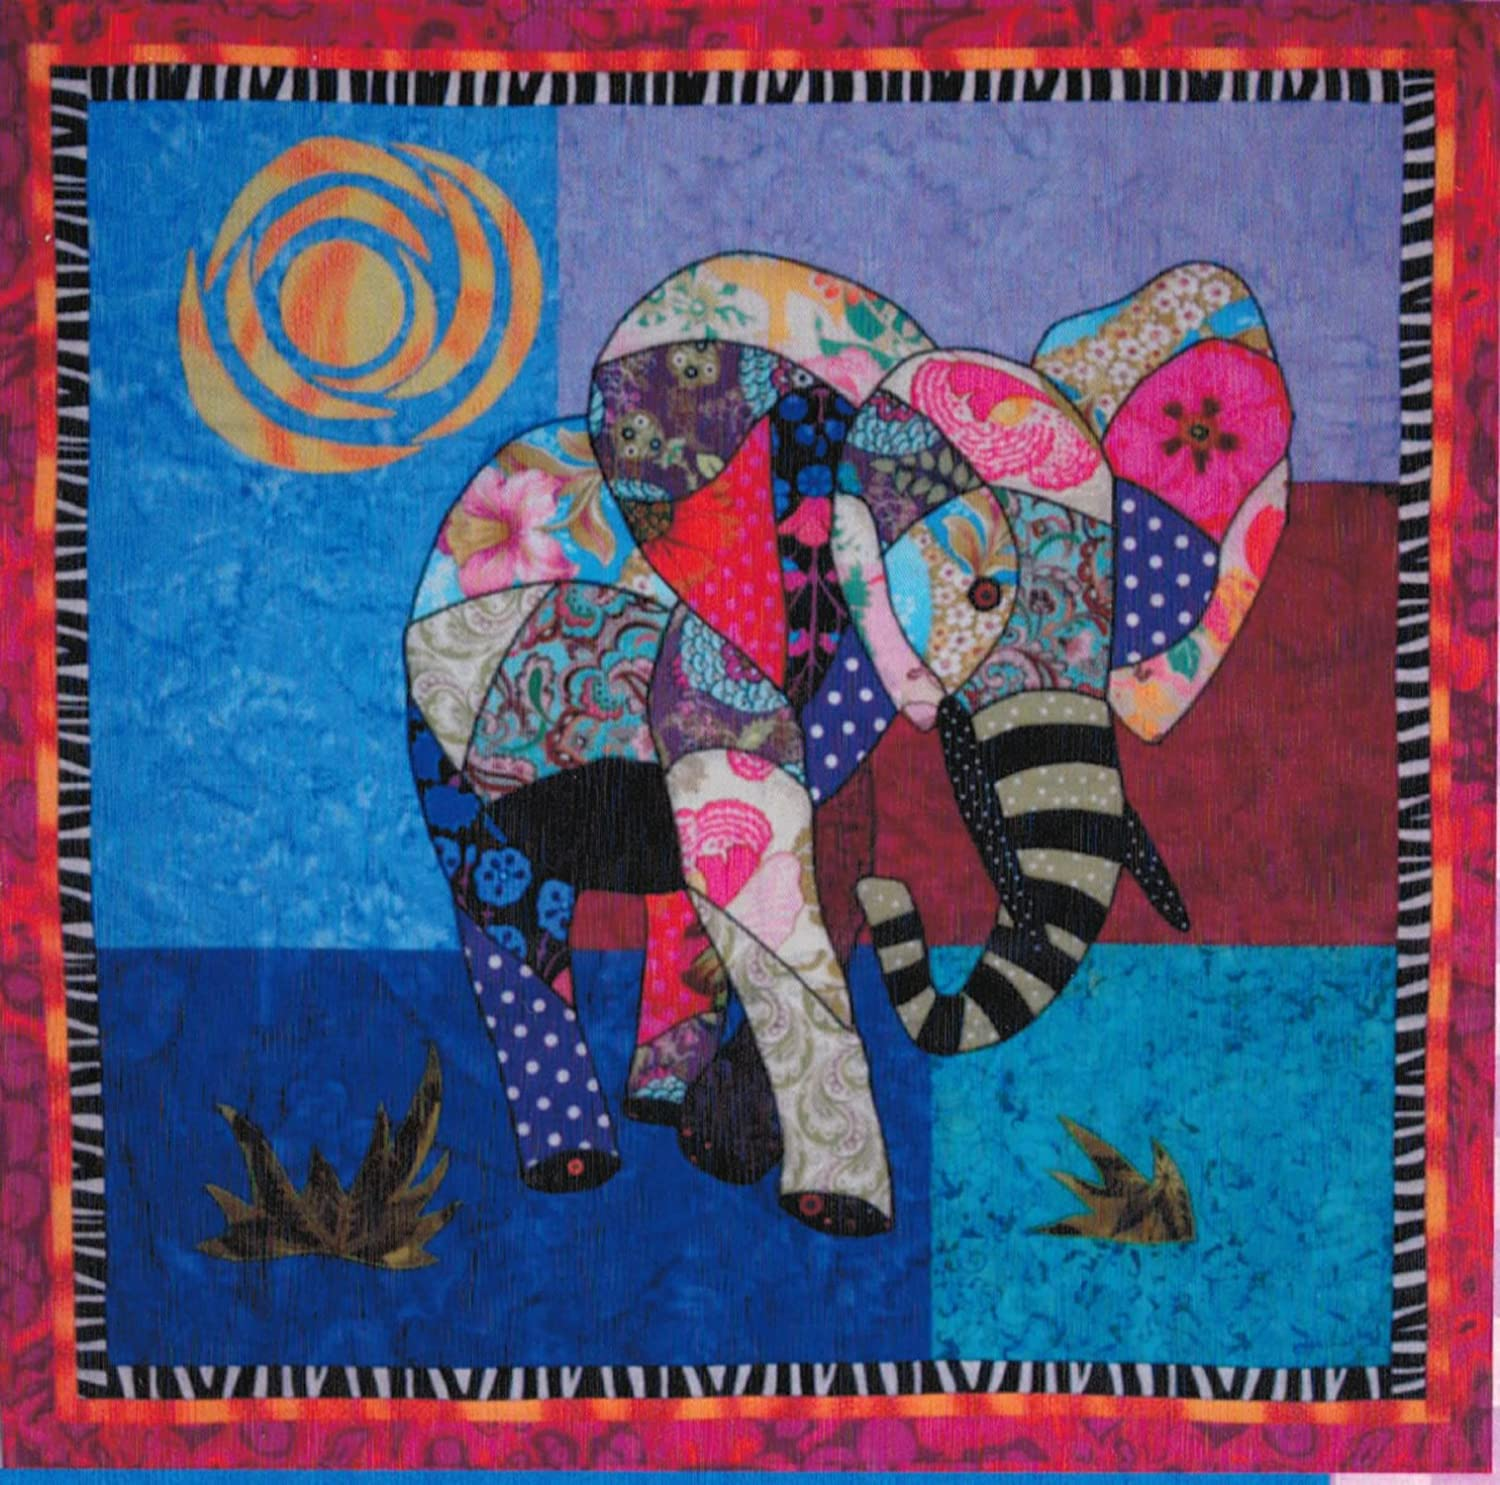 Ellie Elephant Machine Applique Quilt 35 inch by 34 inch Wall Hanging Pattern bj designs and patterns BJEL-06